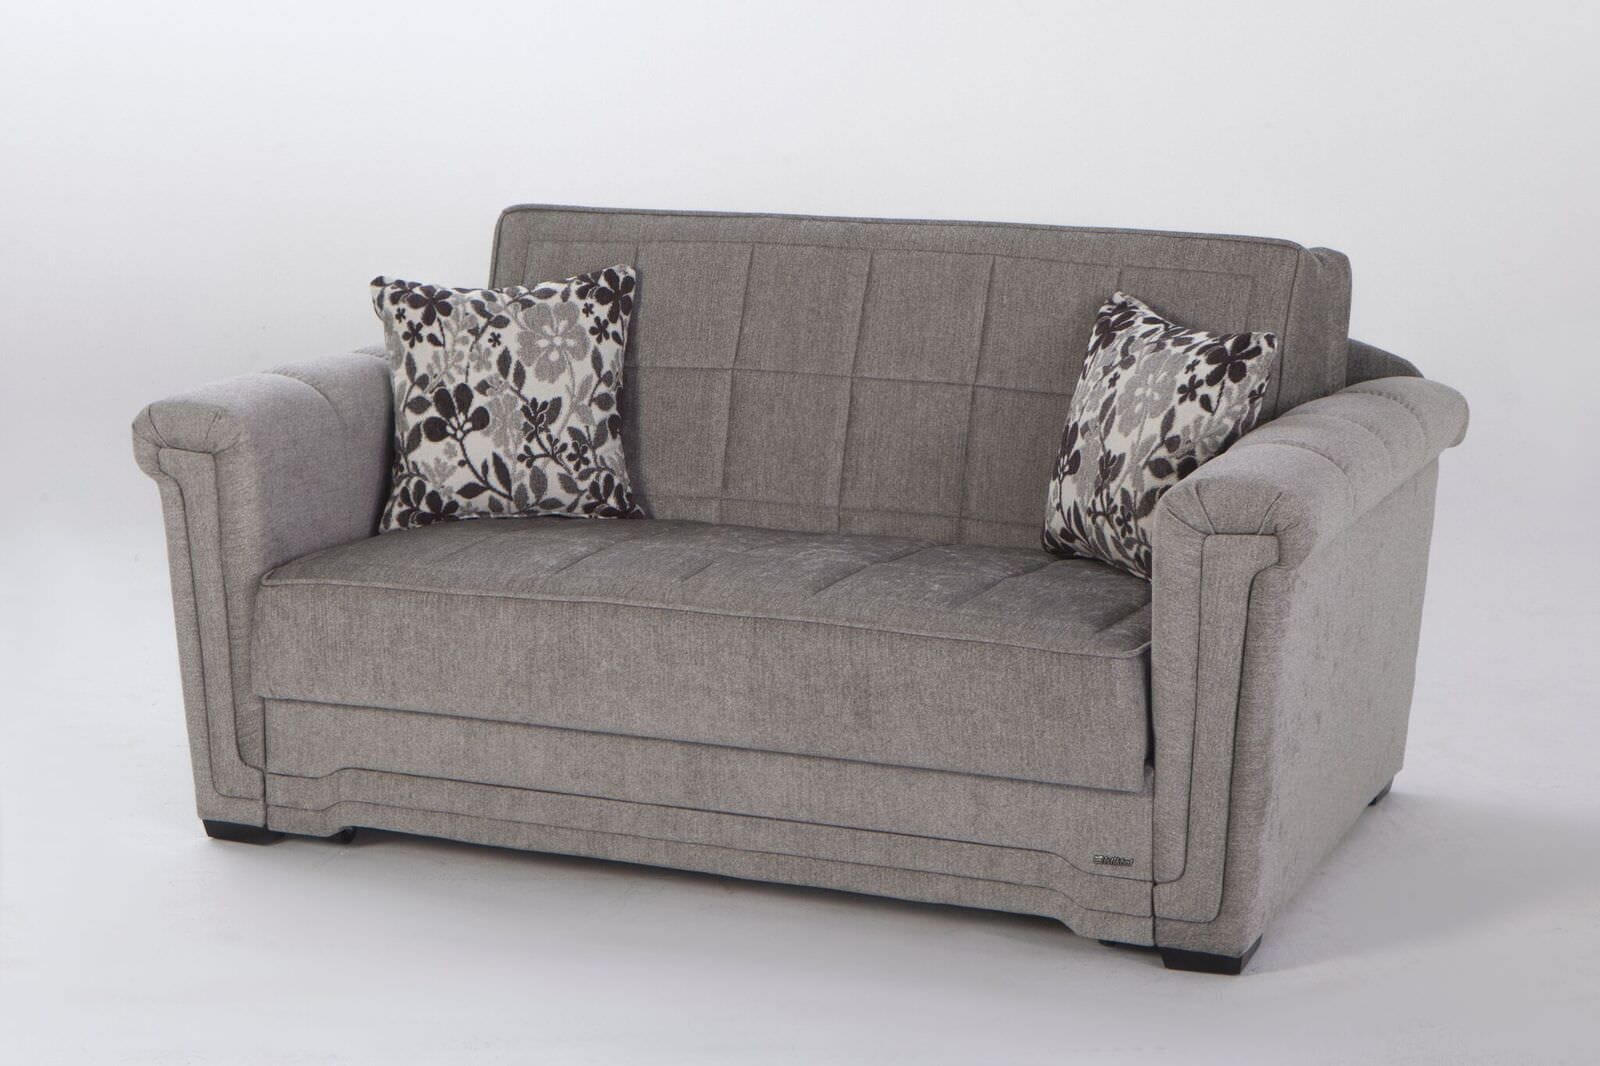 Astonishing Victoria Valencia Gray Loveseat Sleeper By Istikbal Furniture Creativecarmelina Interior Chair Design Creativecarmelinacom